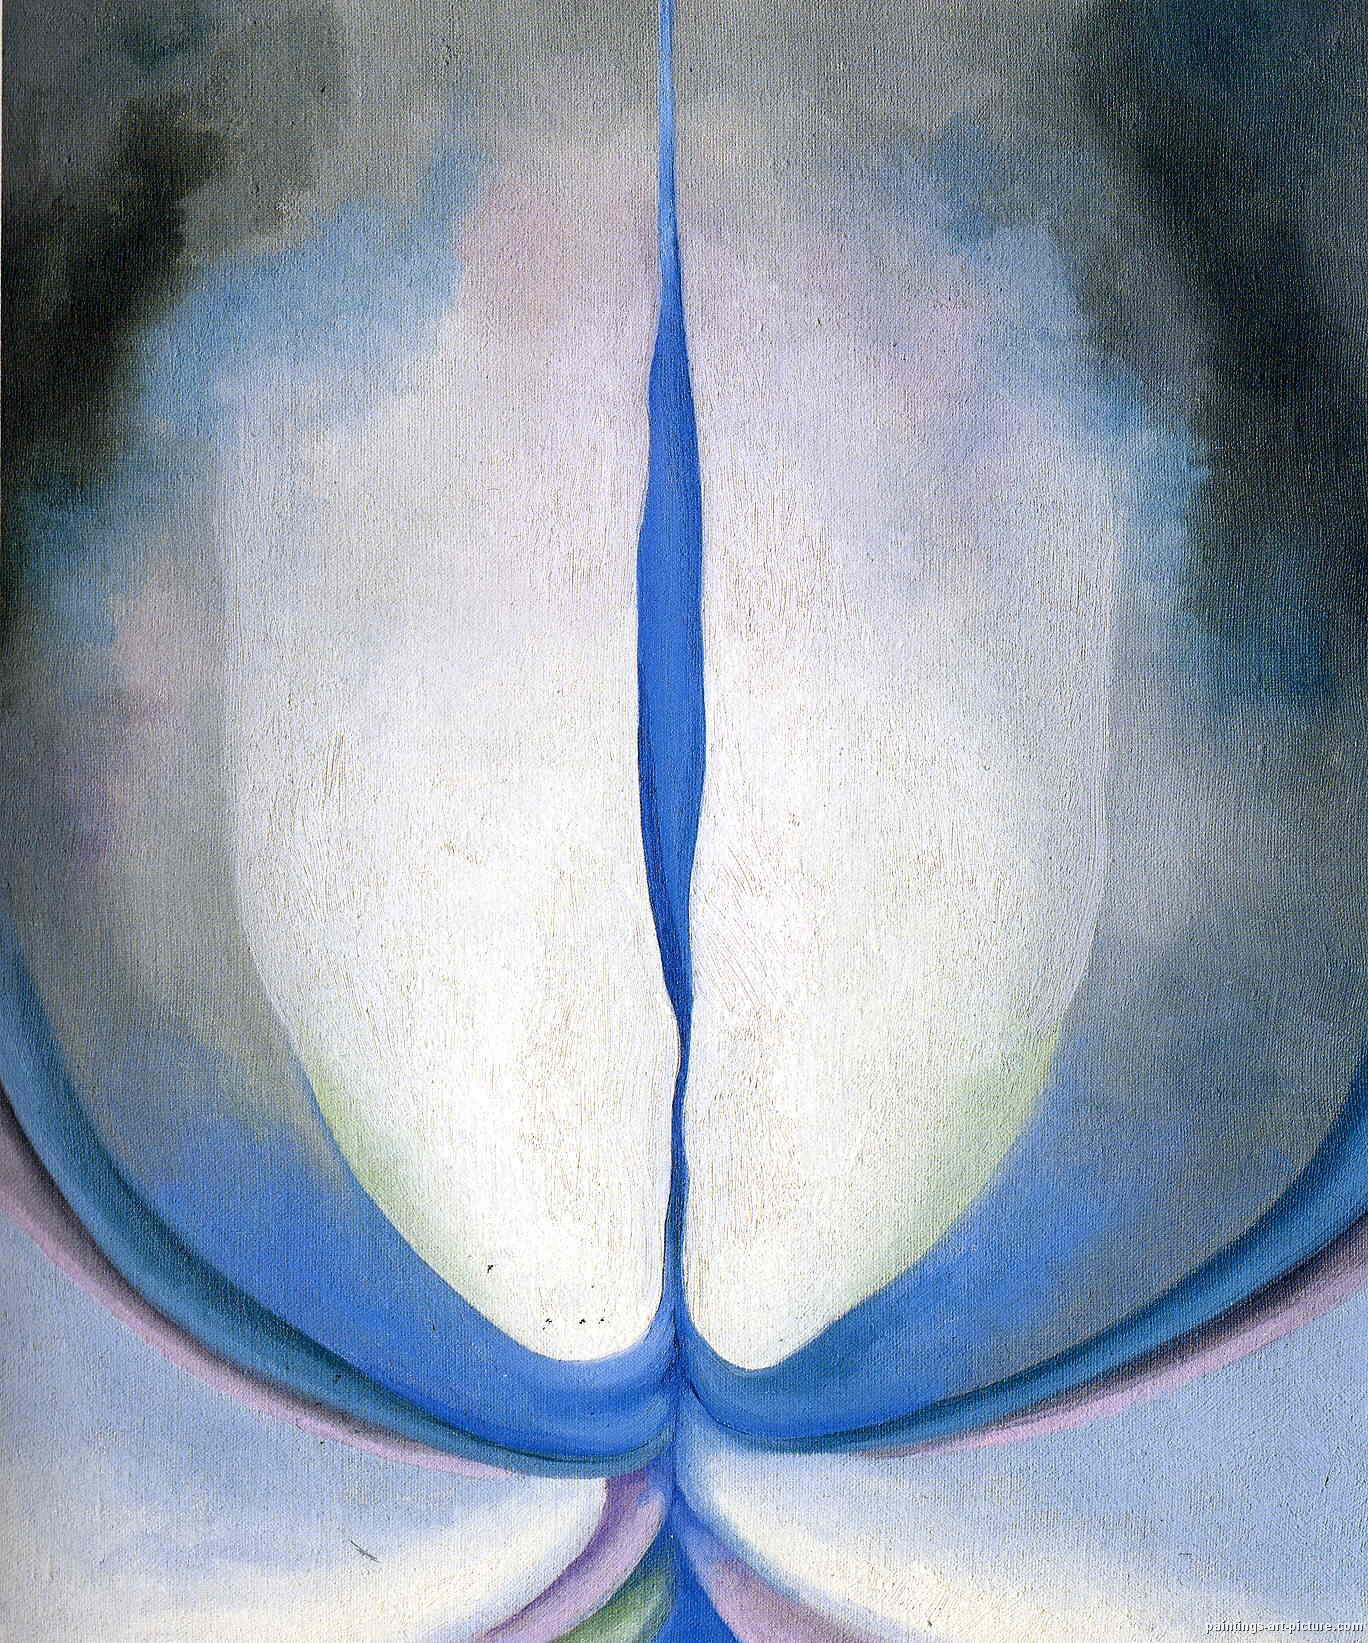 Final, artistic photos female vulva